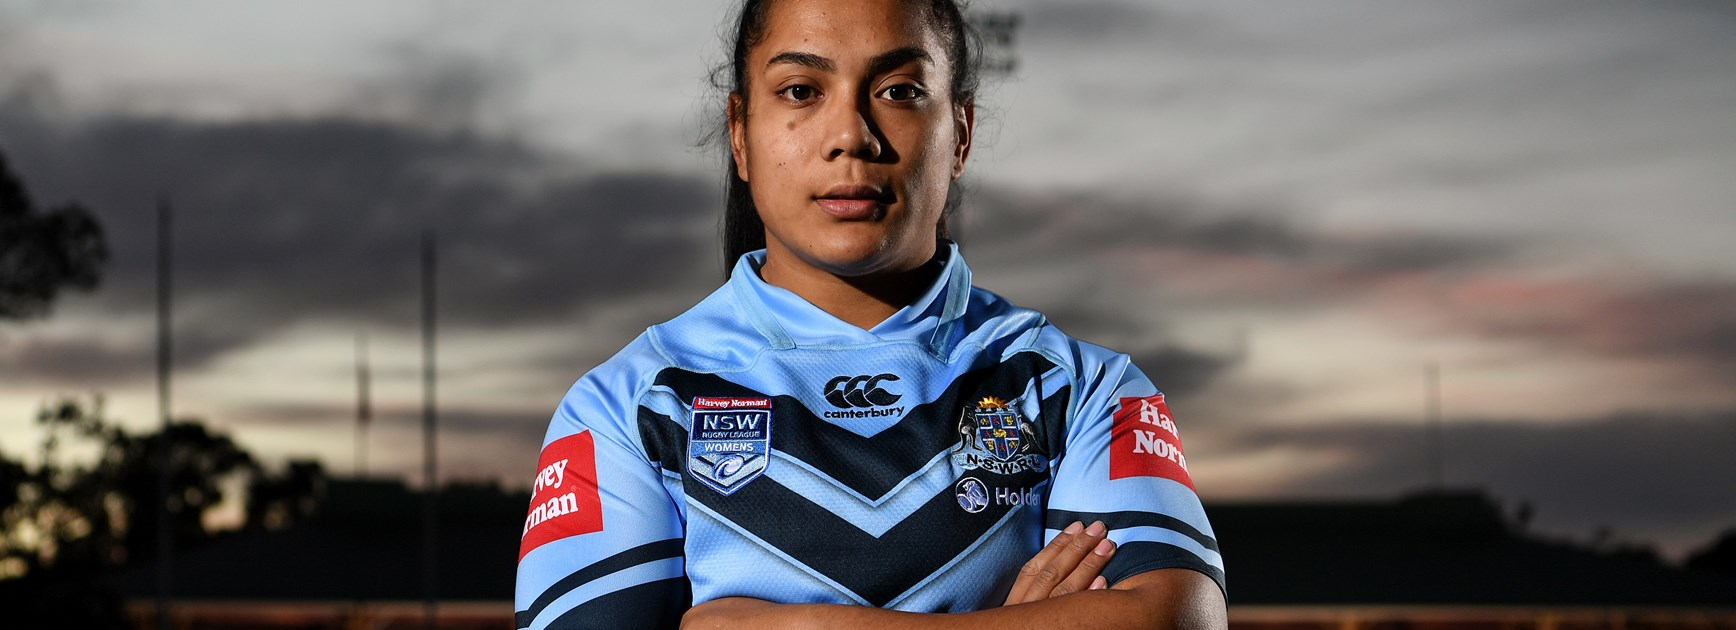 NSW Origin player and Jillaroo Simaima Taufa.